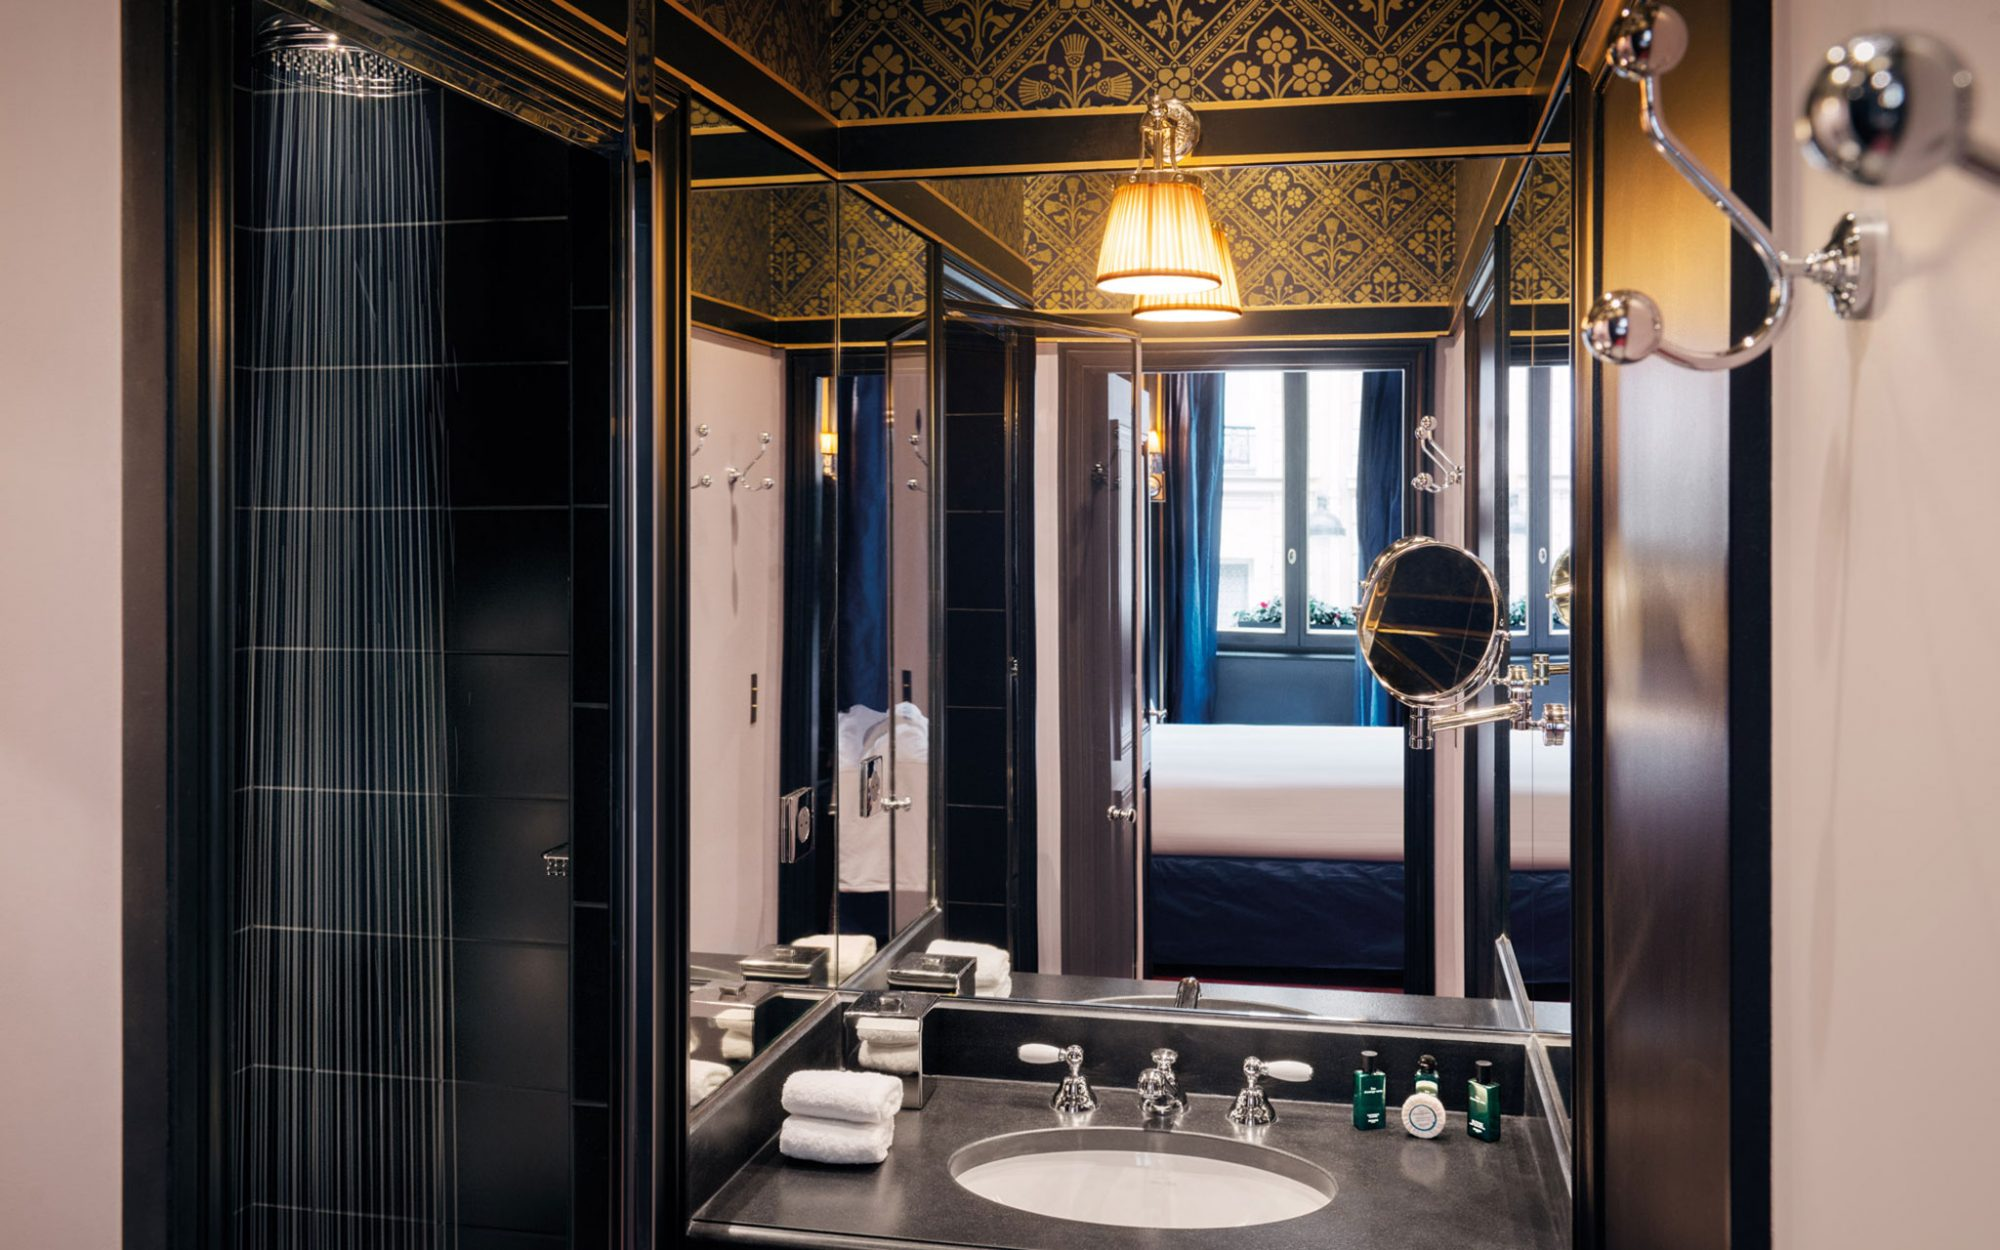 New to Paris: a Vampy Hotel With Design Steeped in Sex: Vanity in Deluxe Room